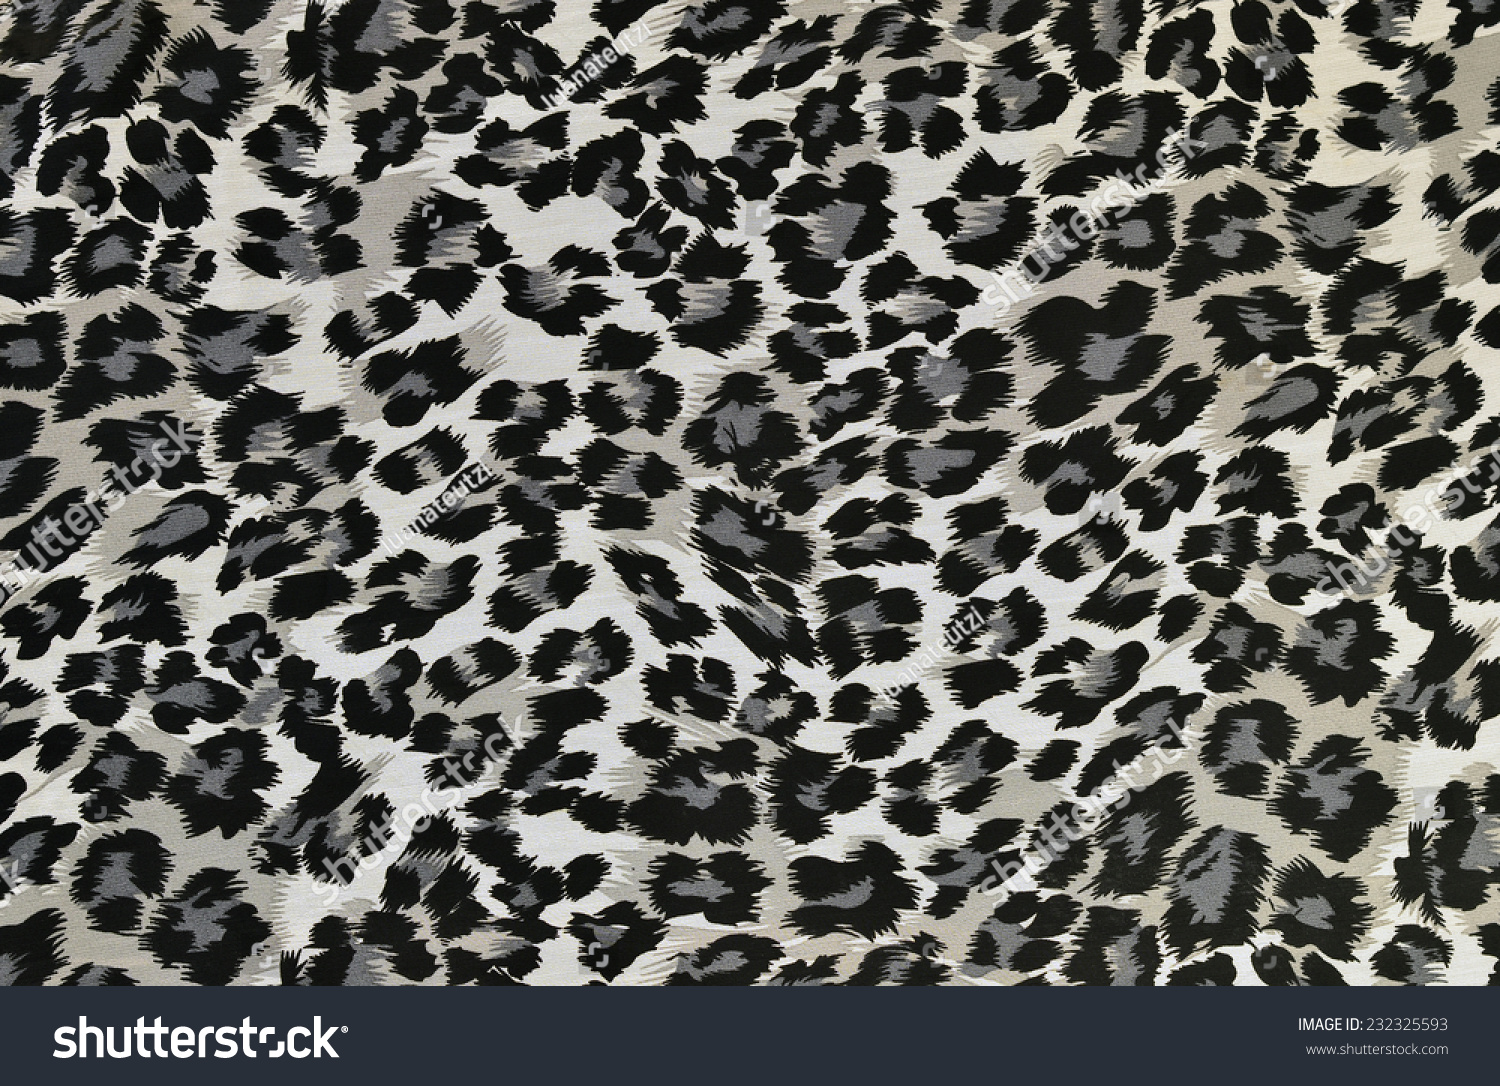 Best Leopard Print Free Vector Art Downloads from the Vecteezy community. Leopard Print Free Vector Art licensed under creative commons, open source, and more! Join Eezy! Login; animal Black Leopard Pattern Leopard Print Background Free Vector Texture Vol. 2.